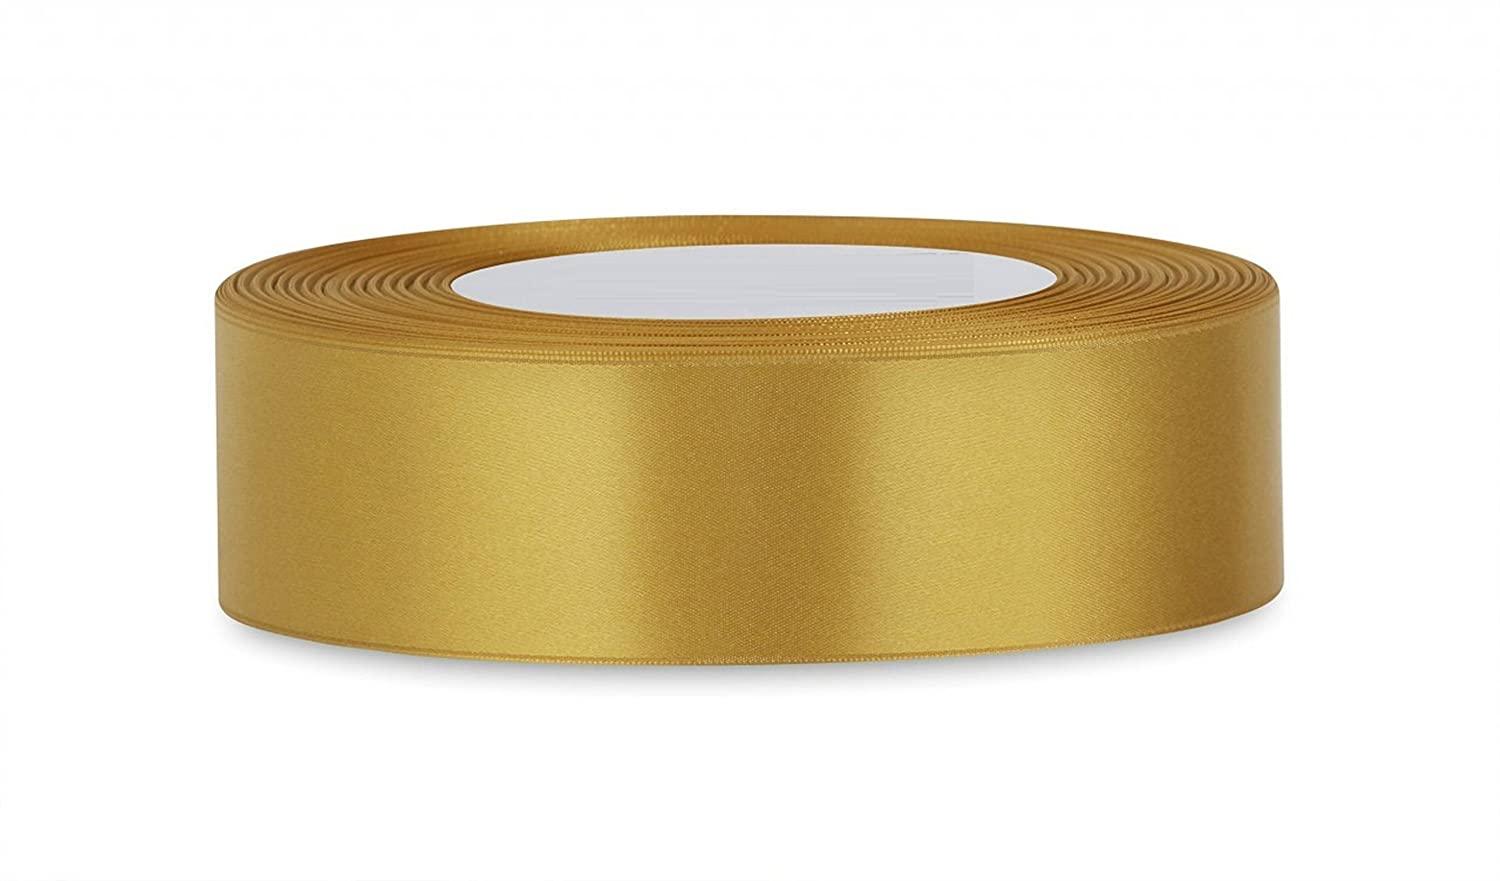 23Meters Of Satin Ribbon 12mm In Multiple Colours Satin Ribbon Tying Gift Ribbon Wedding Trimming Crafts Apron Deco 25 Yards Brown Many Colours BUY ANY 3 Colours /& GET 1 FREE